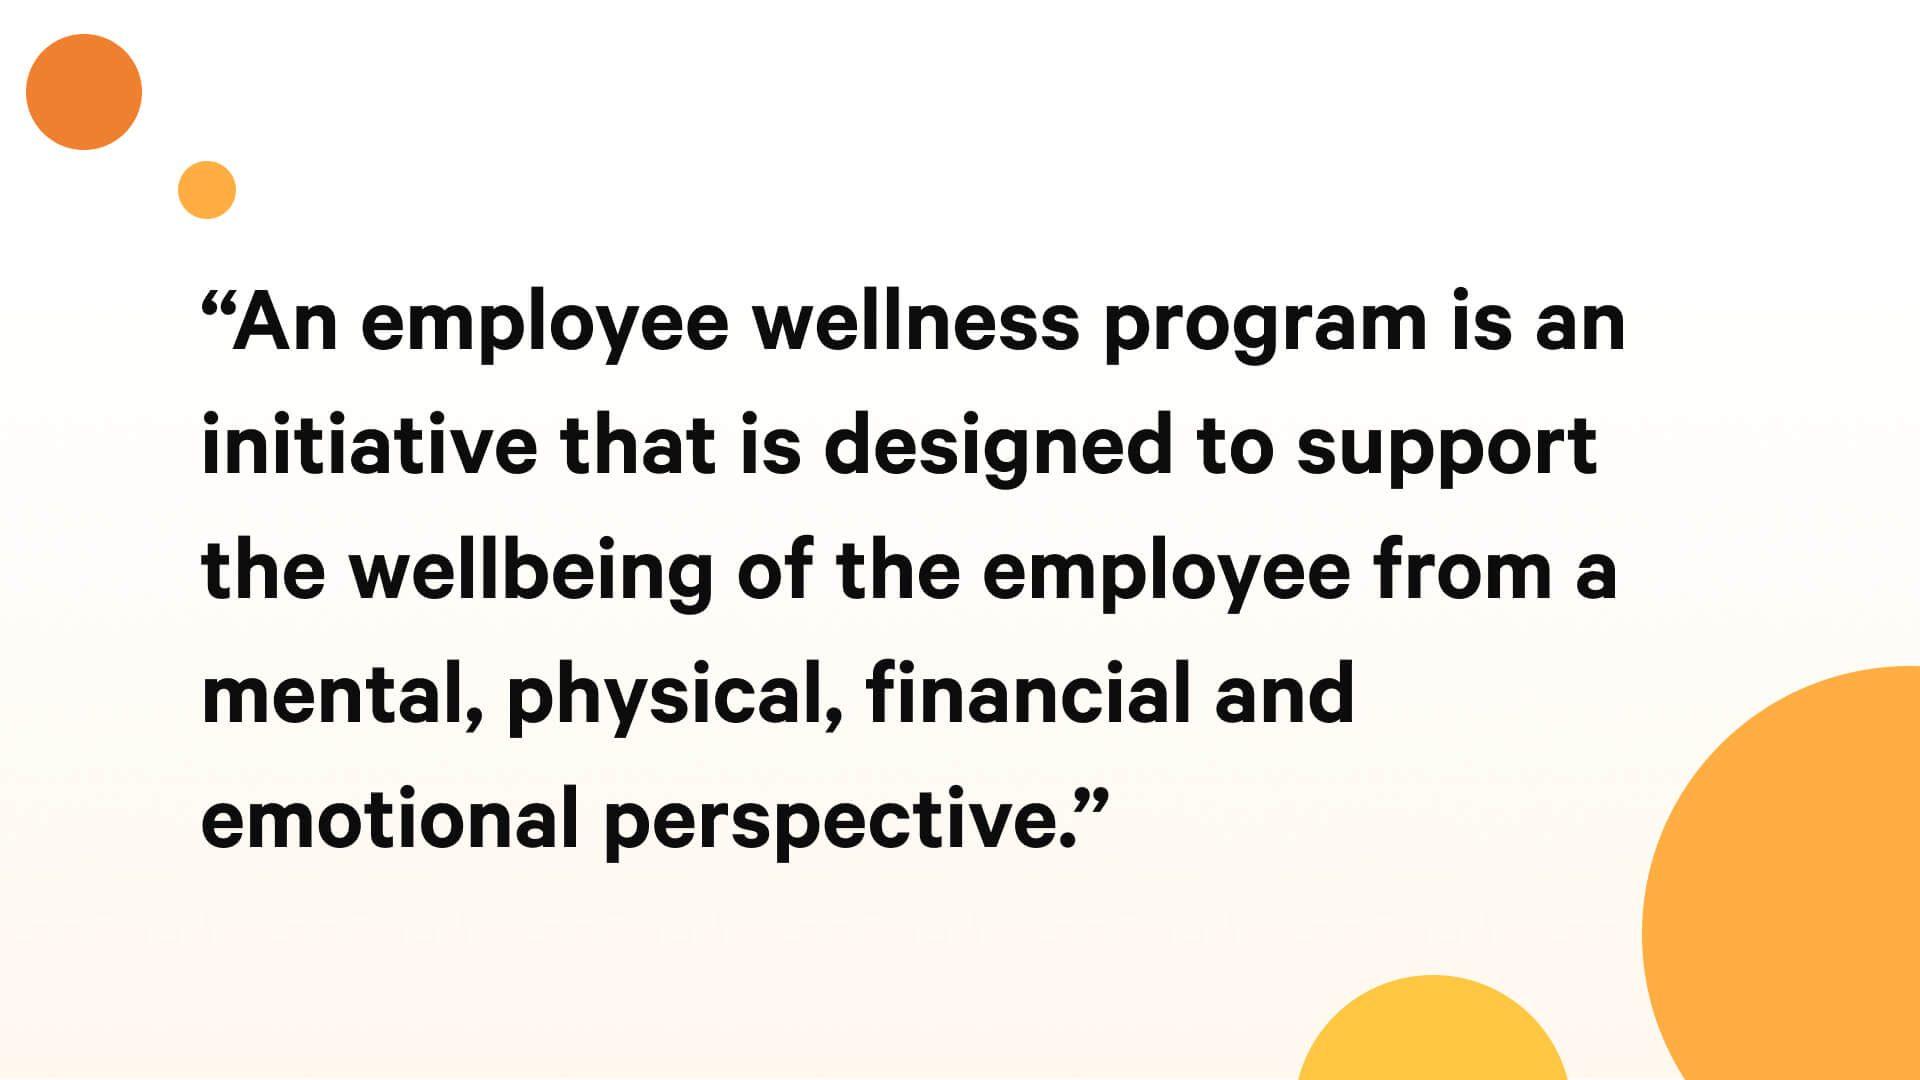 An employee wellness program is an initiative that is designed to support the wellbeing of the employee from a mental, physical, financial and emotional perspective.